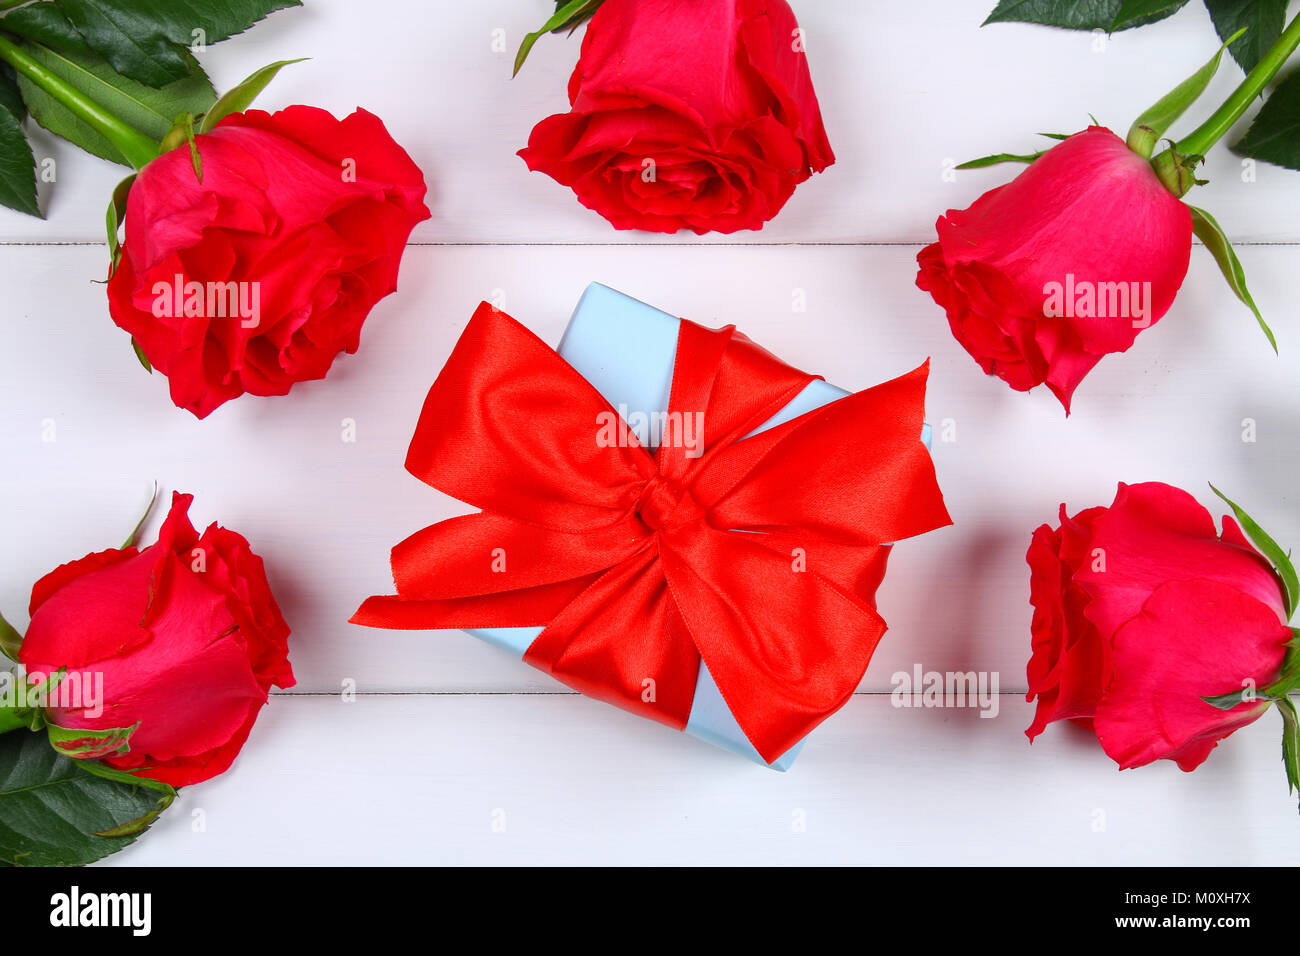 Pink Roses With A Gift Box Tied Bow Template For March 8 Mothers Day Valentines